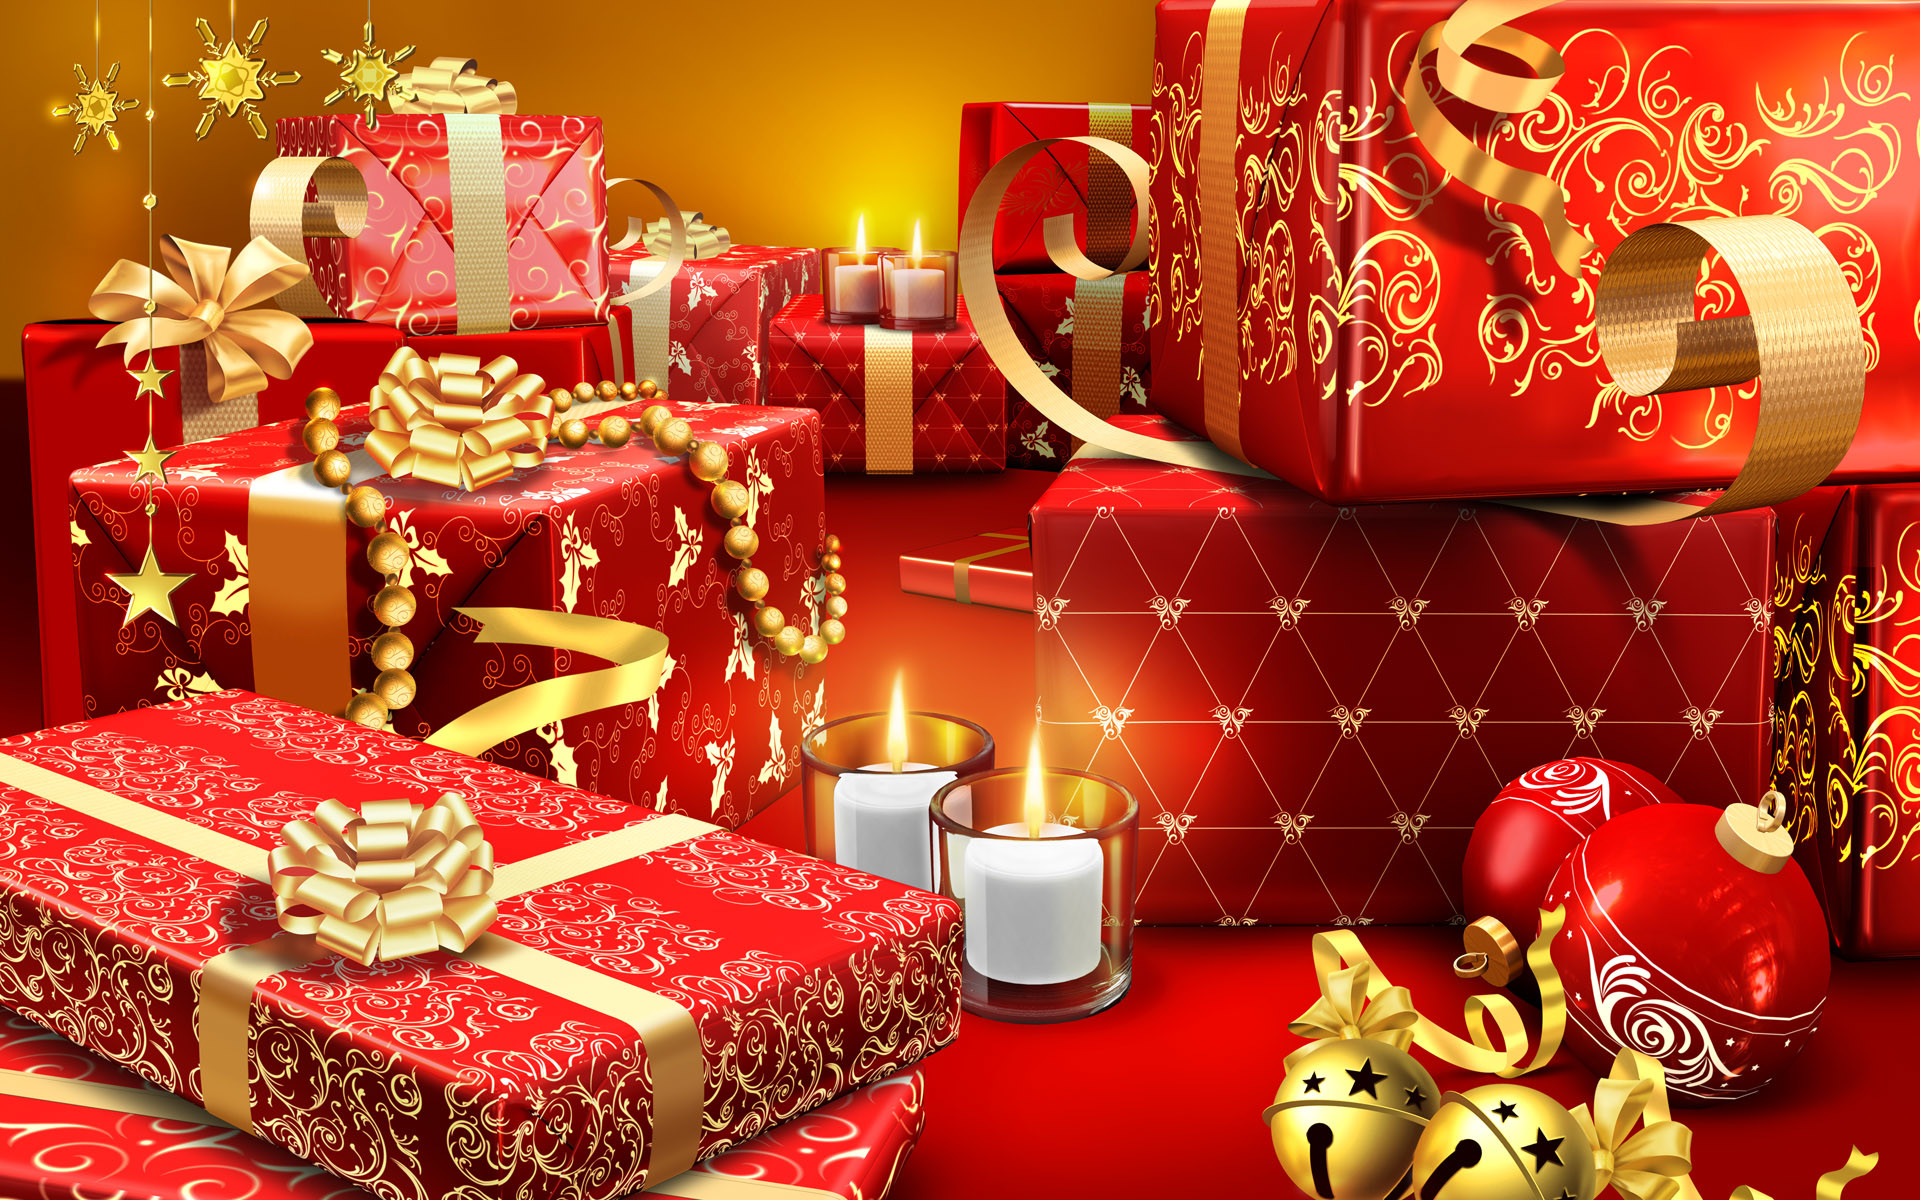 Christmas Gifts Wallpapers.  Best_christmas_Pictures_HD_Christmas_Wallpapers_Desktop_Backgrounds_Christmas_Picture_Cards